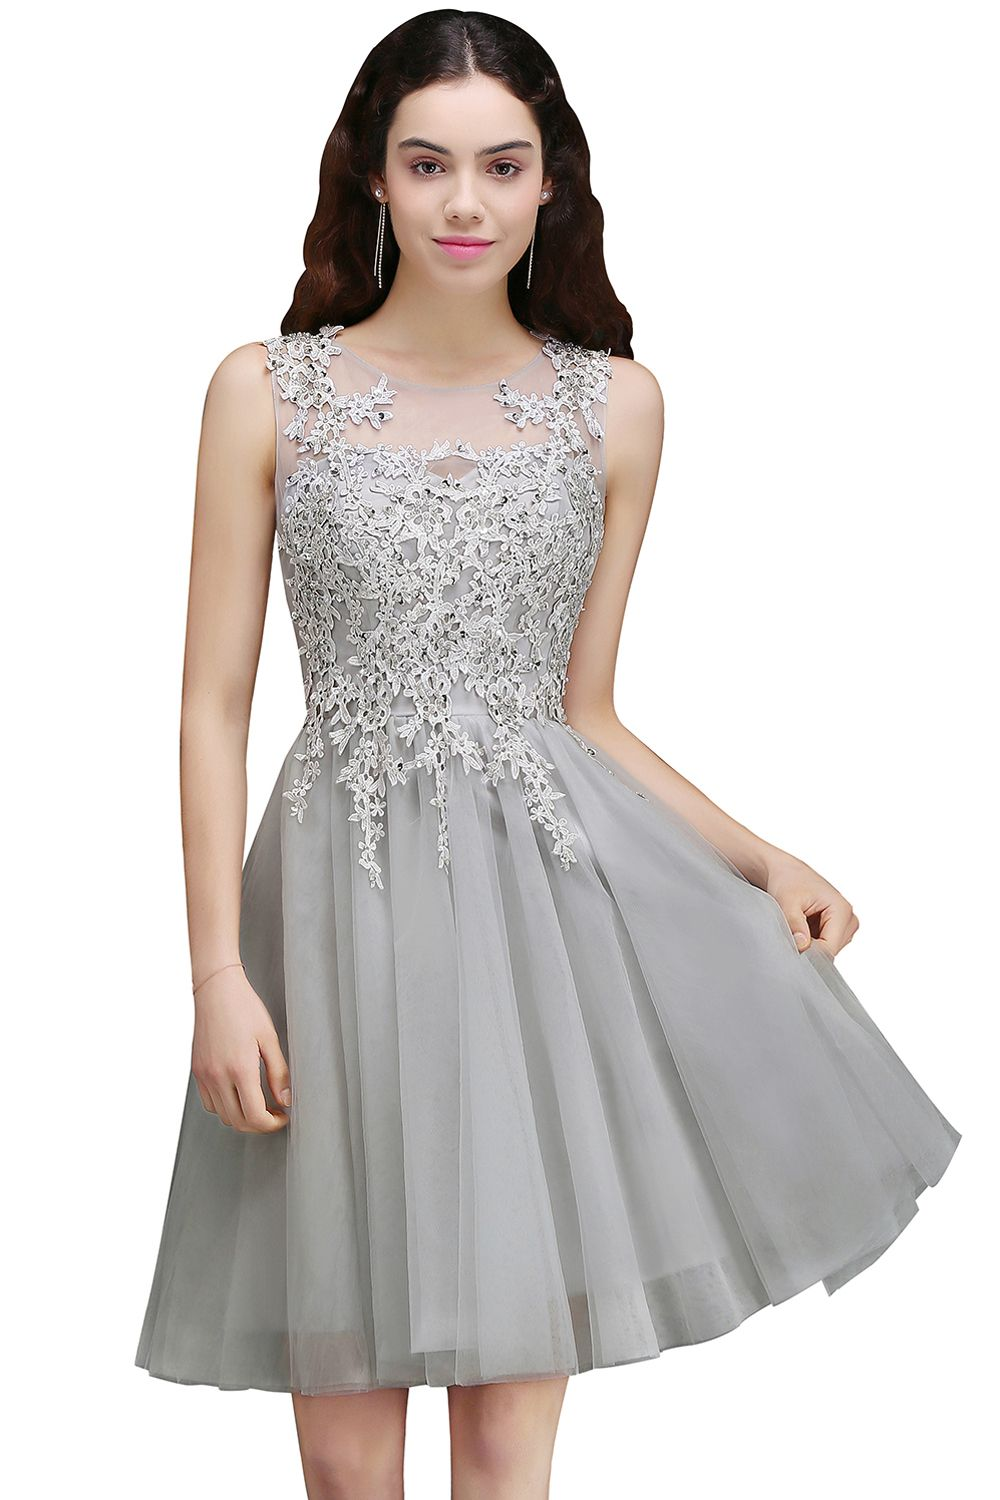 f19f3ec05a1 silver lace applique bridesmaid dress homecoming cocktail gowns ...